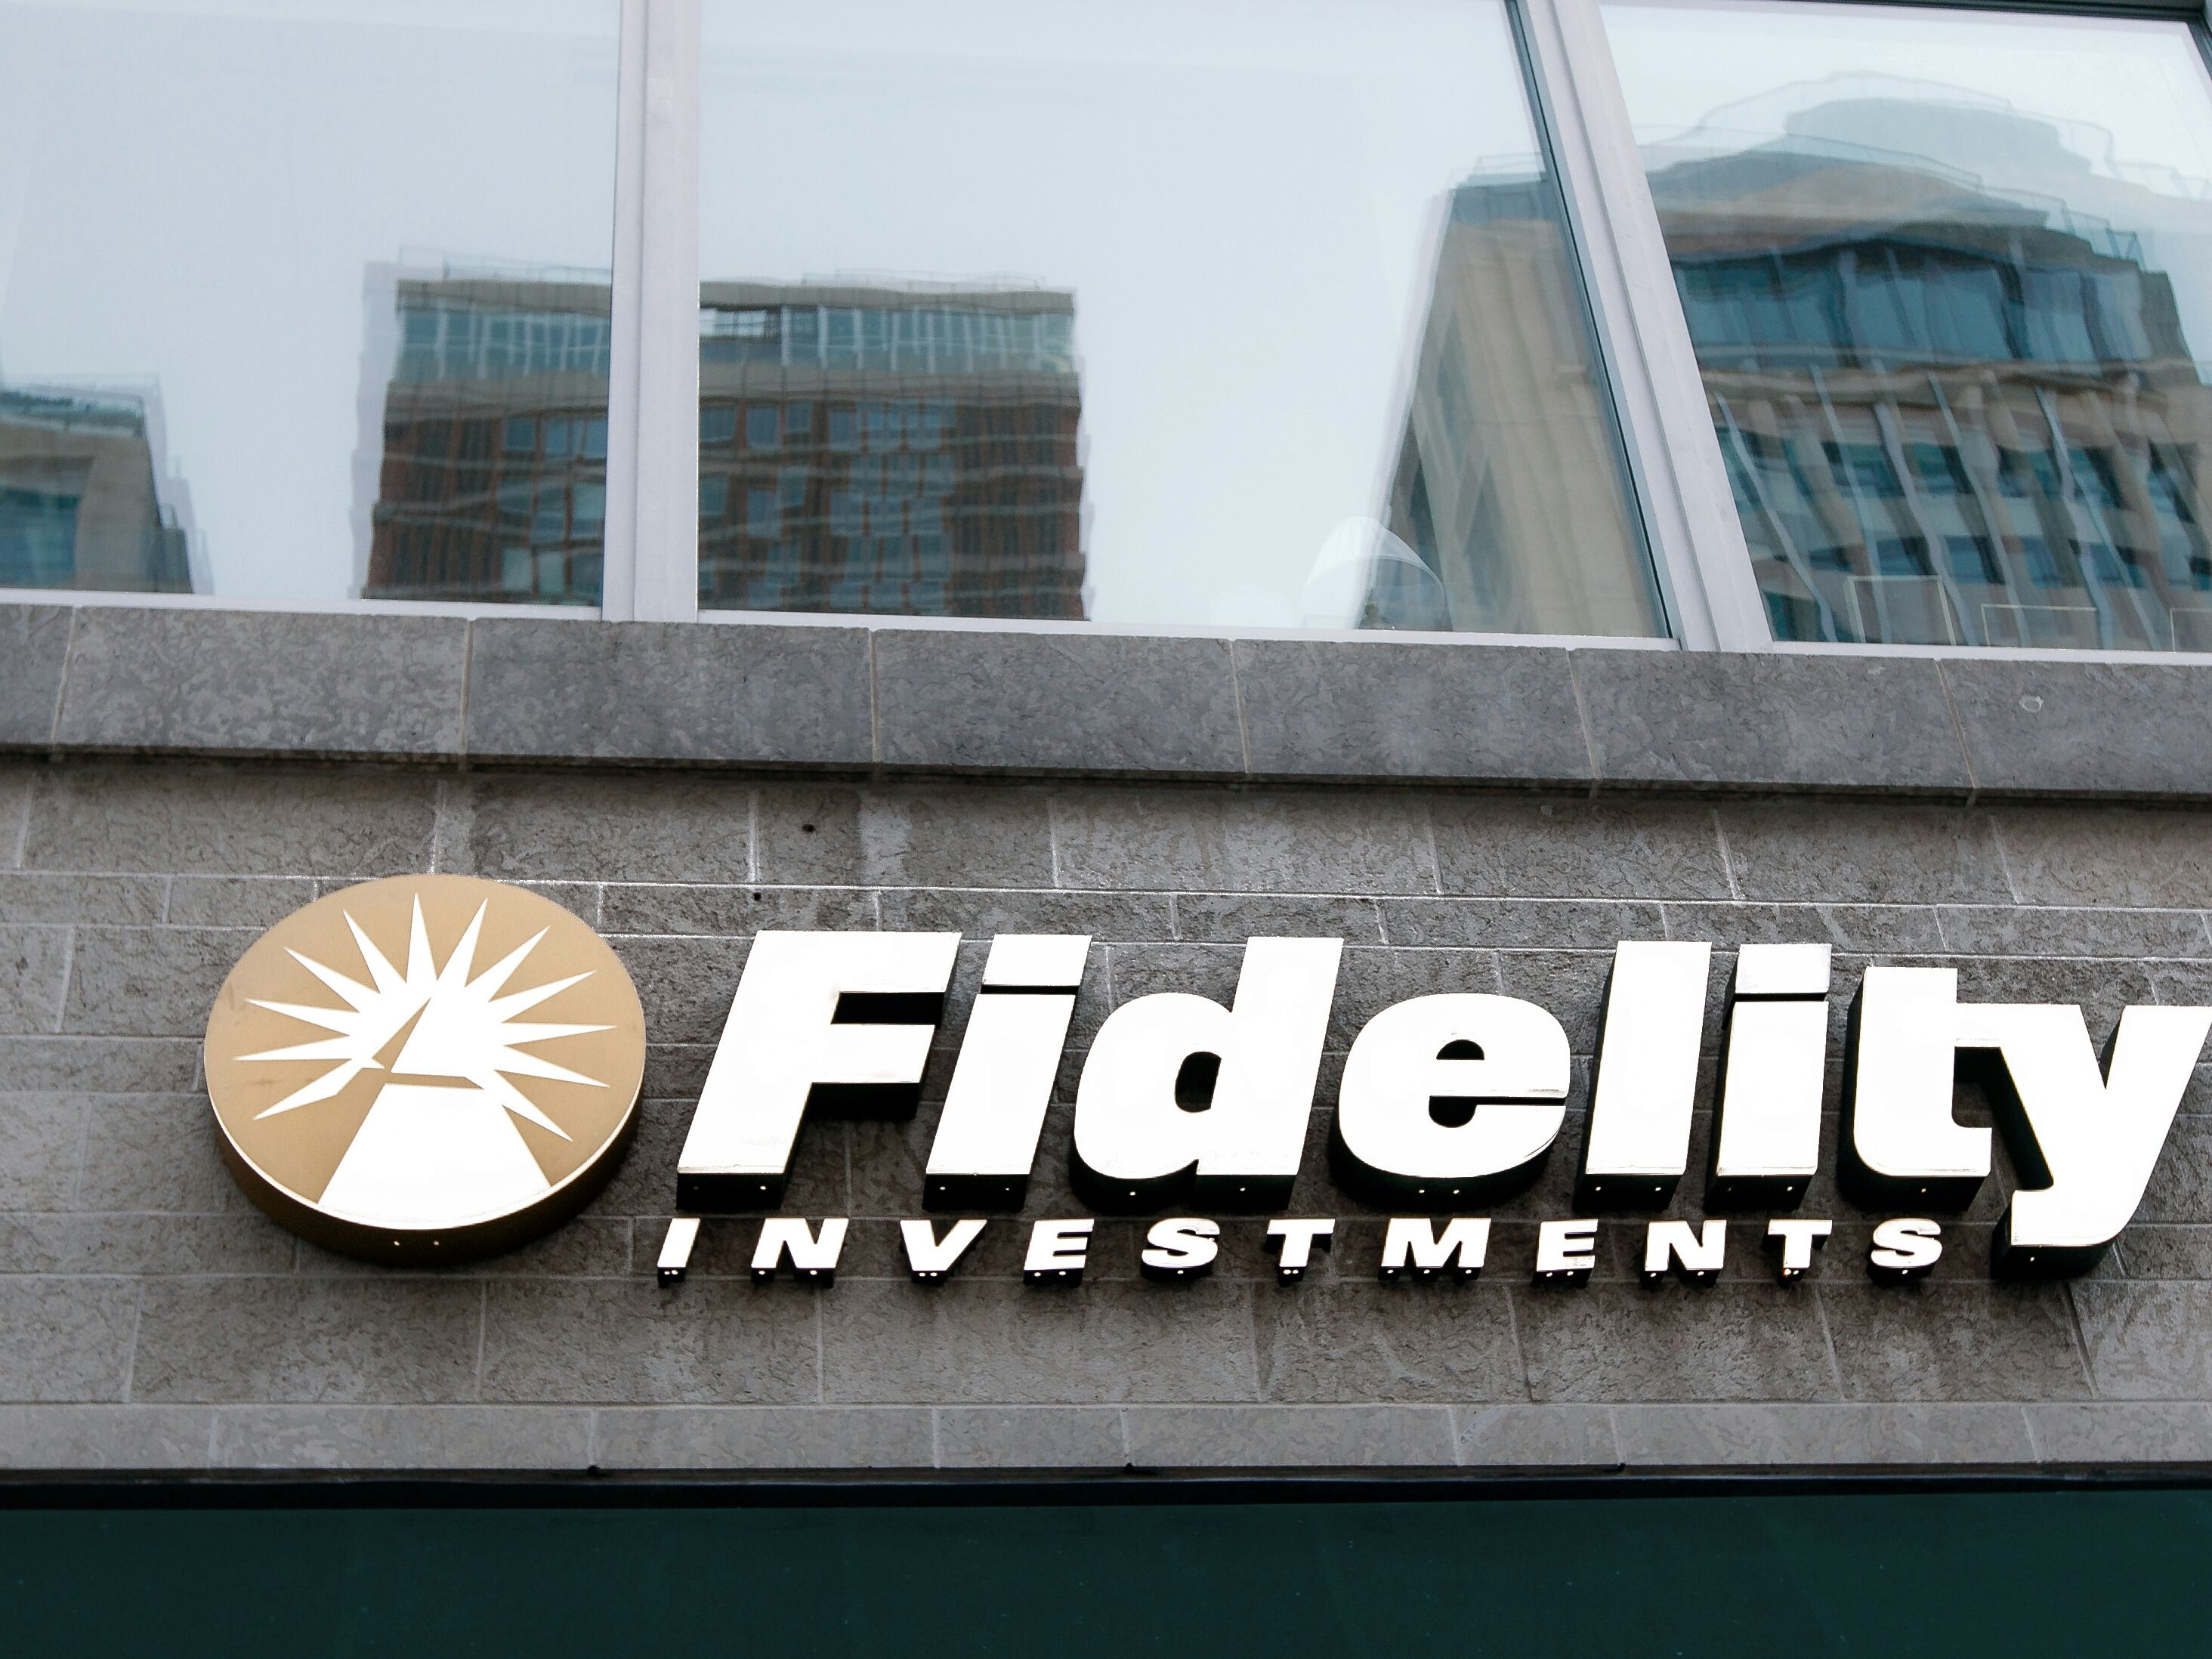 what cryptocurrencies can you invest in on fidelity